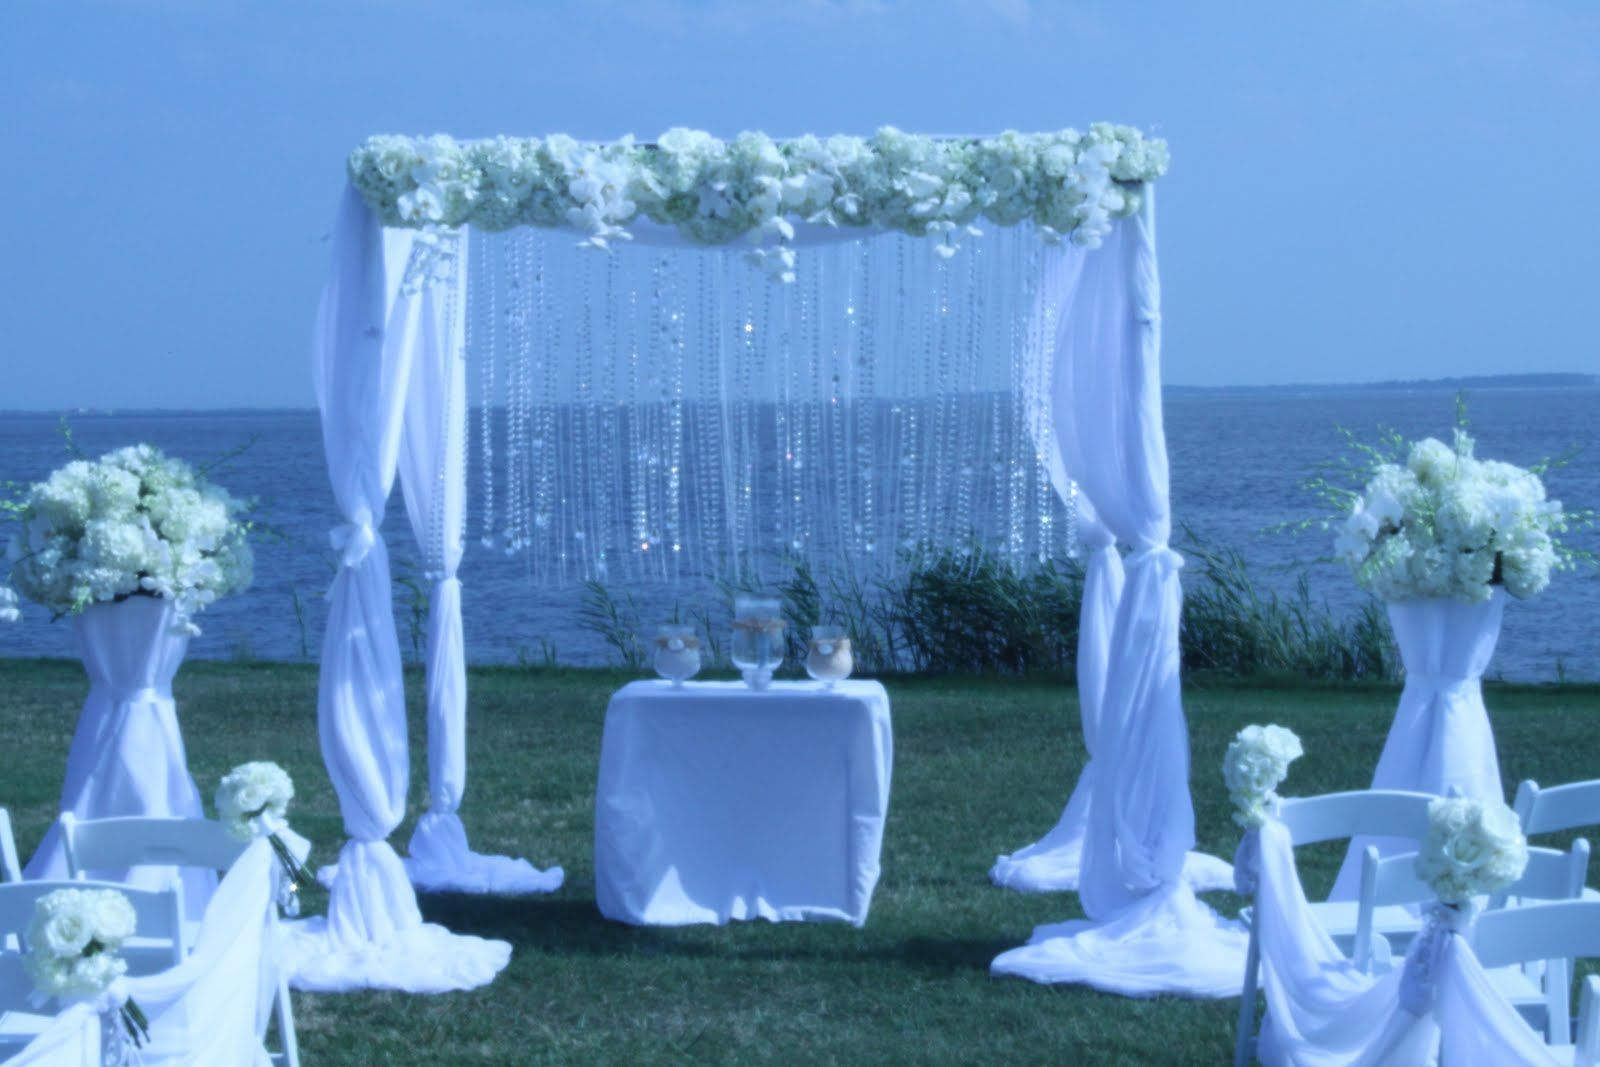 Rehoboth beach wedding with our crystal fabric canopy. & crystal wedding arches | ... .us: Rehoboth beach wedding with our ...